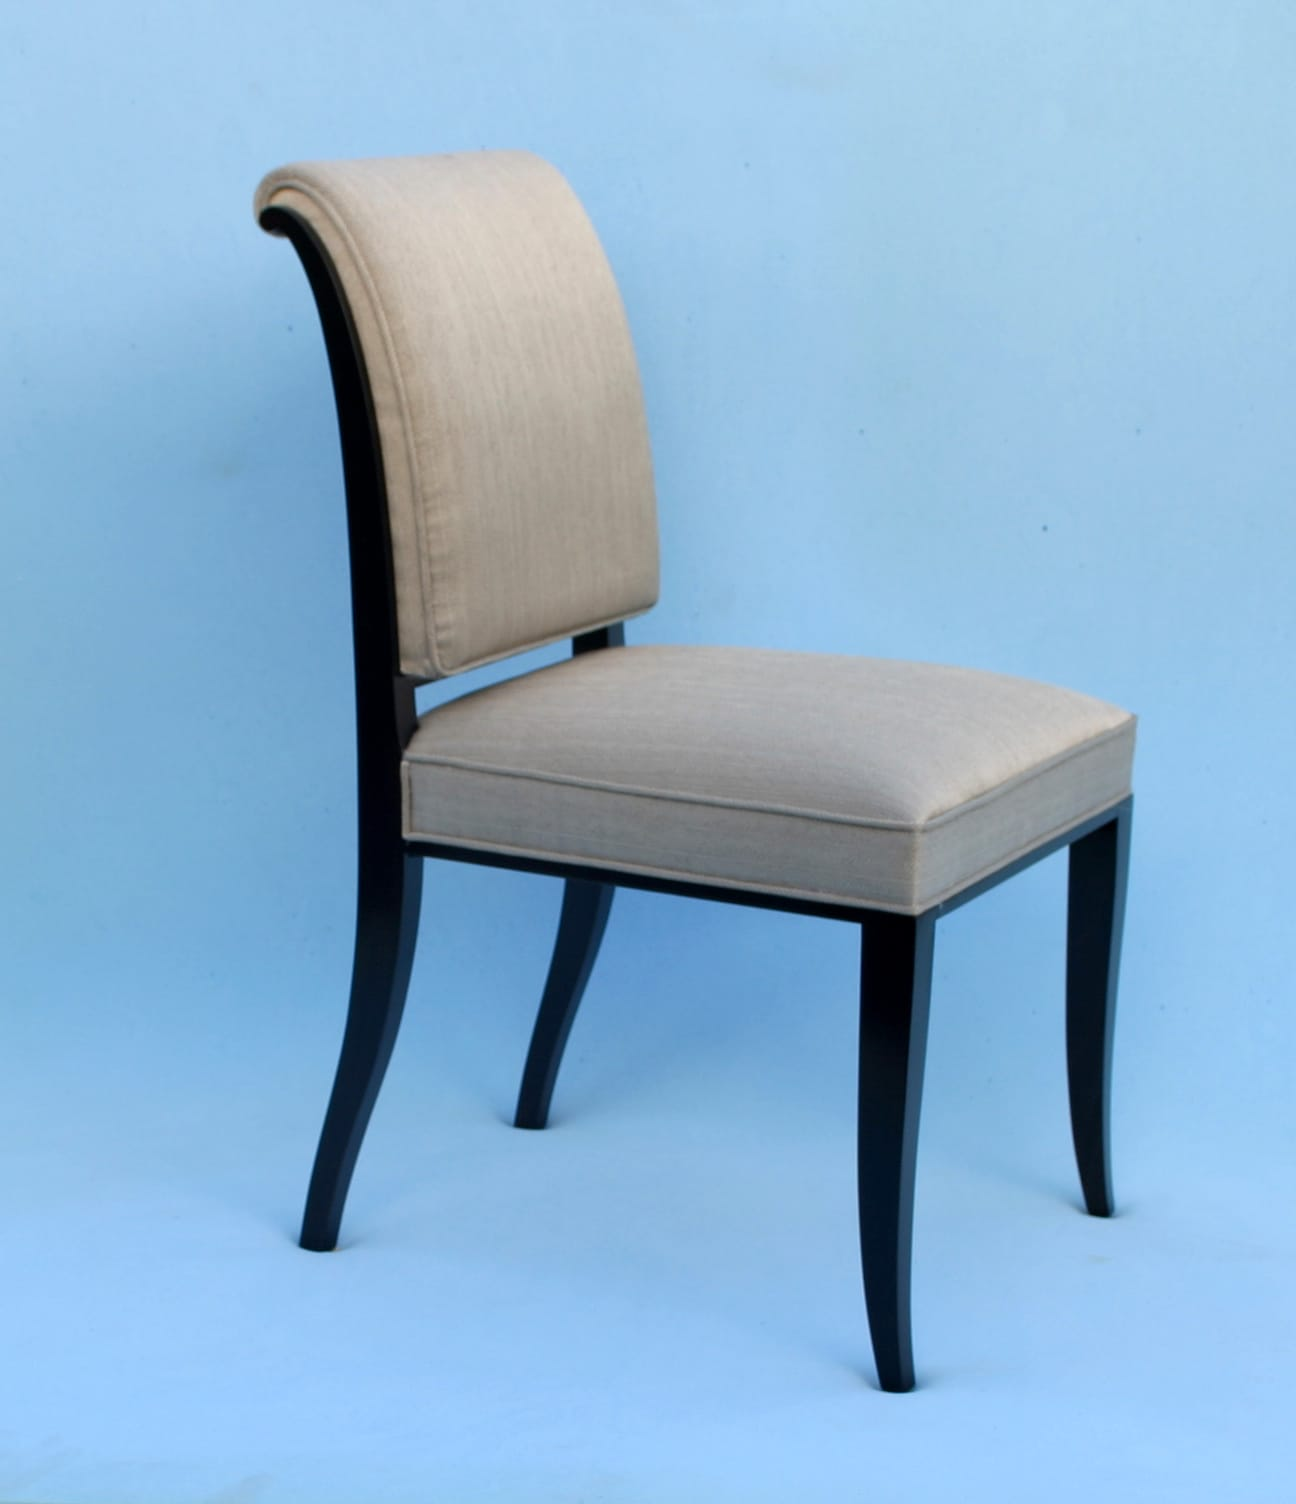 Art Deco And Modern Chairs Handmade In Britain Reed Rackstraw Fine English Chair Makers